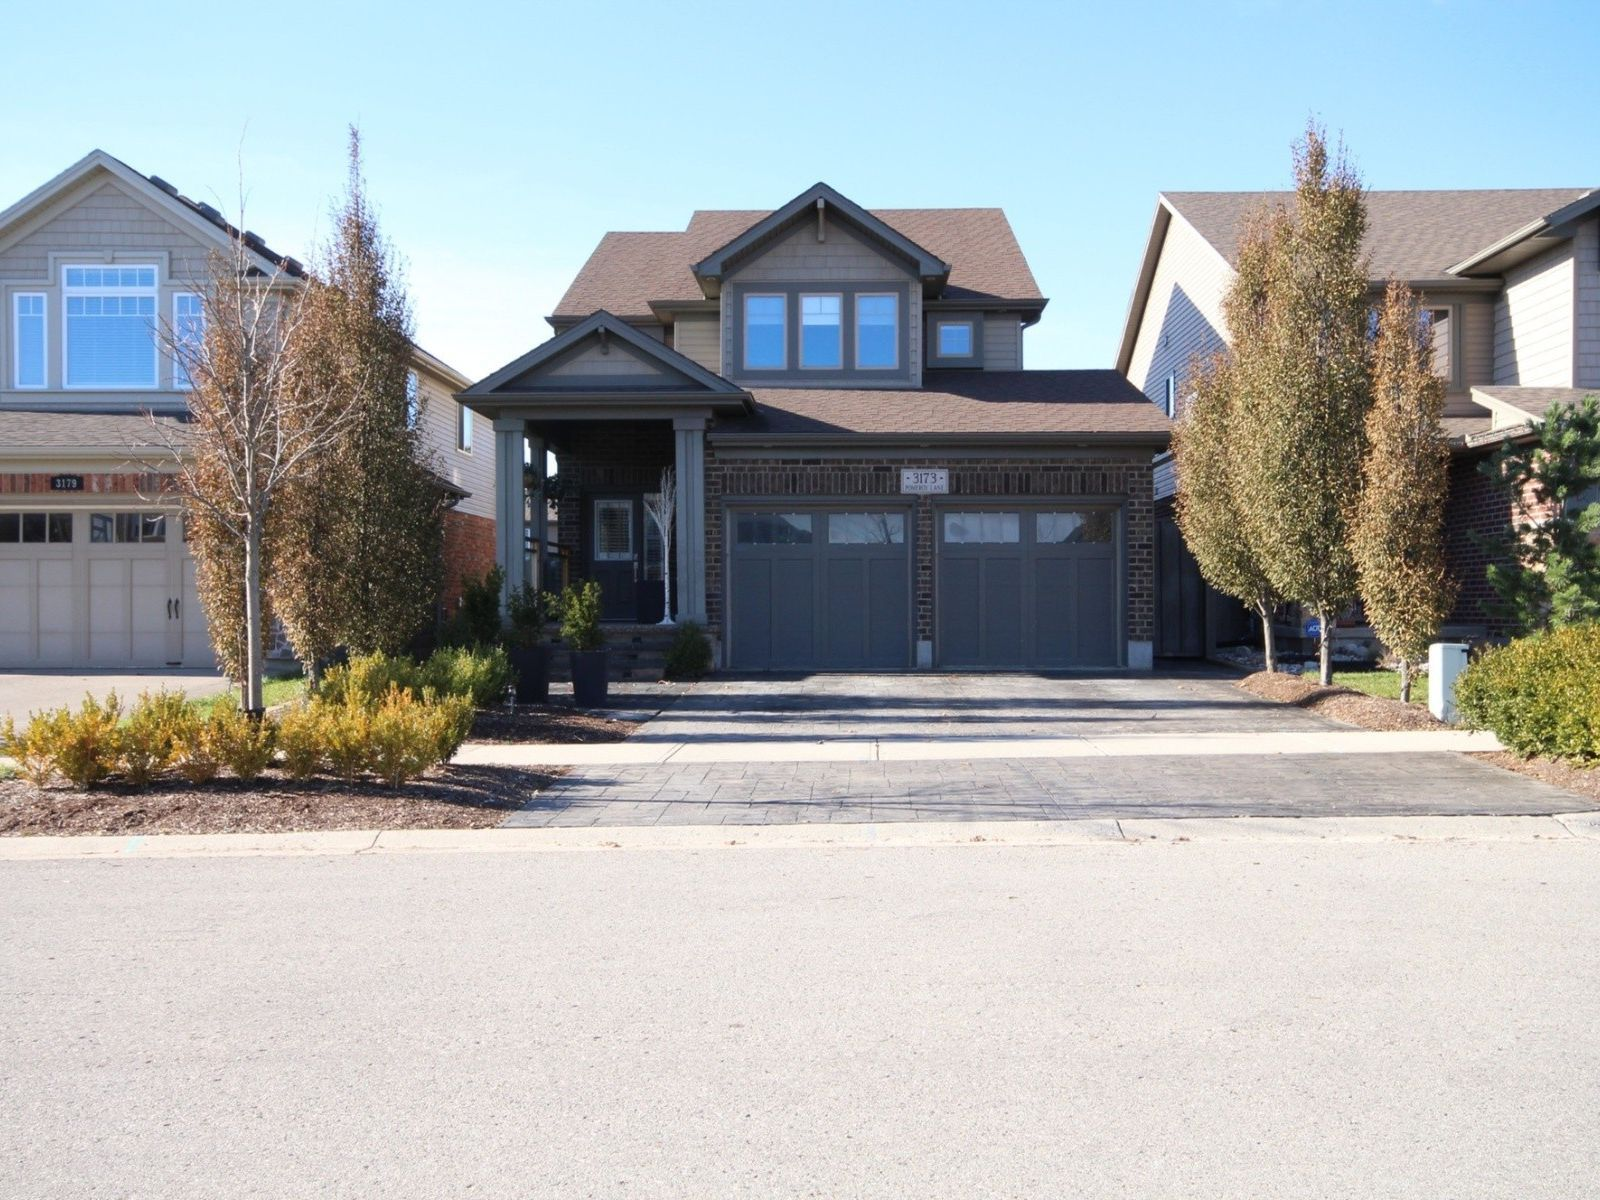 4 bedroom homes for sale in london ontario bedroom for 4 bedroom homes for sale